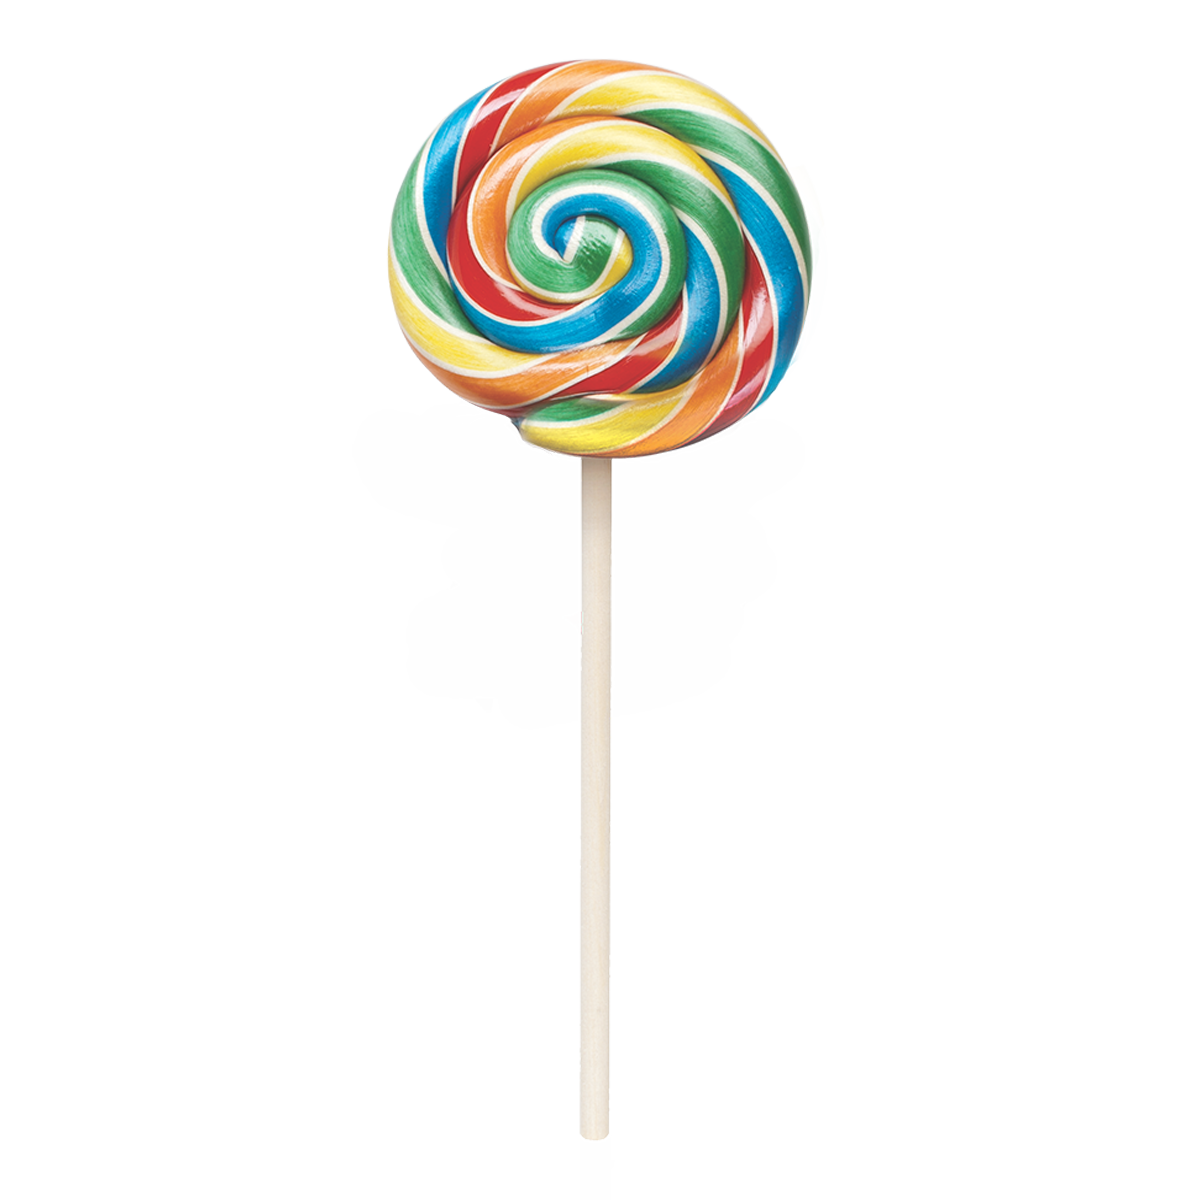 rainbow-swirl-lollipop-50g